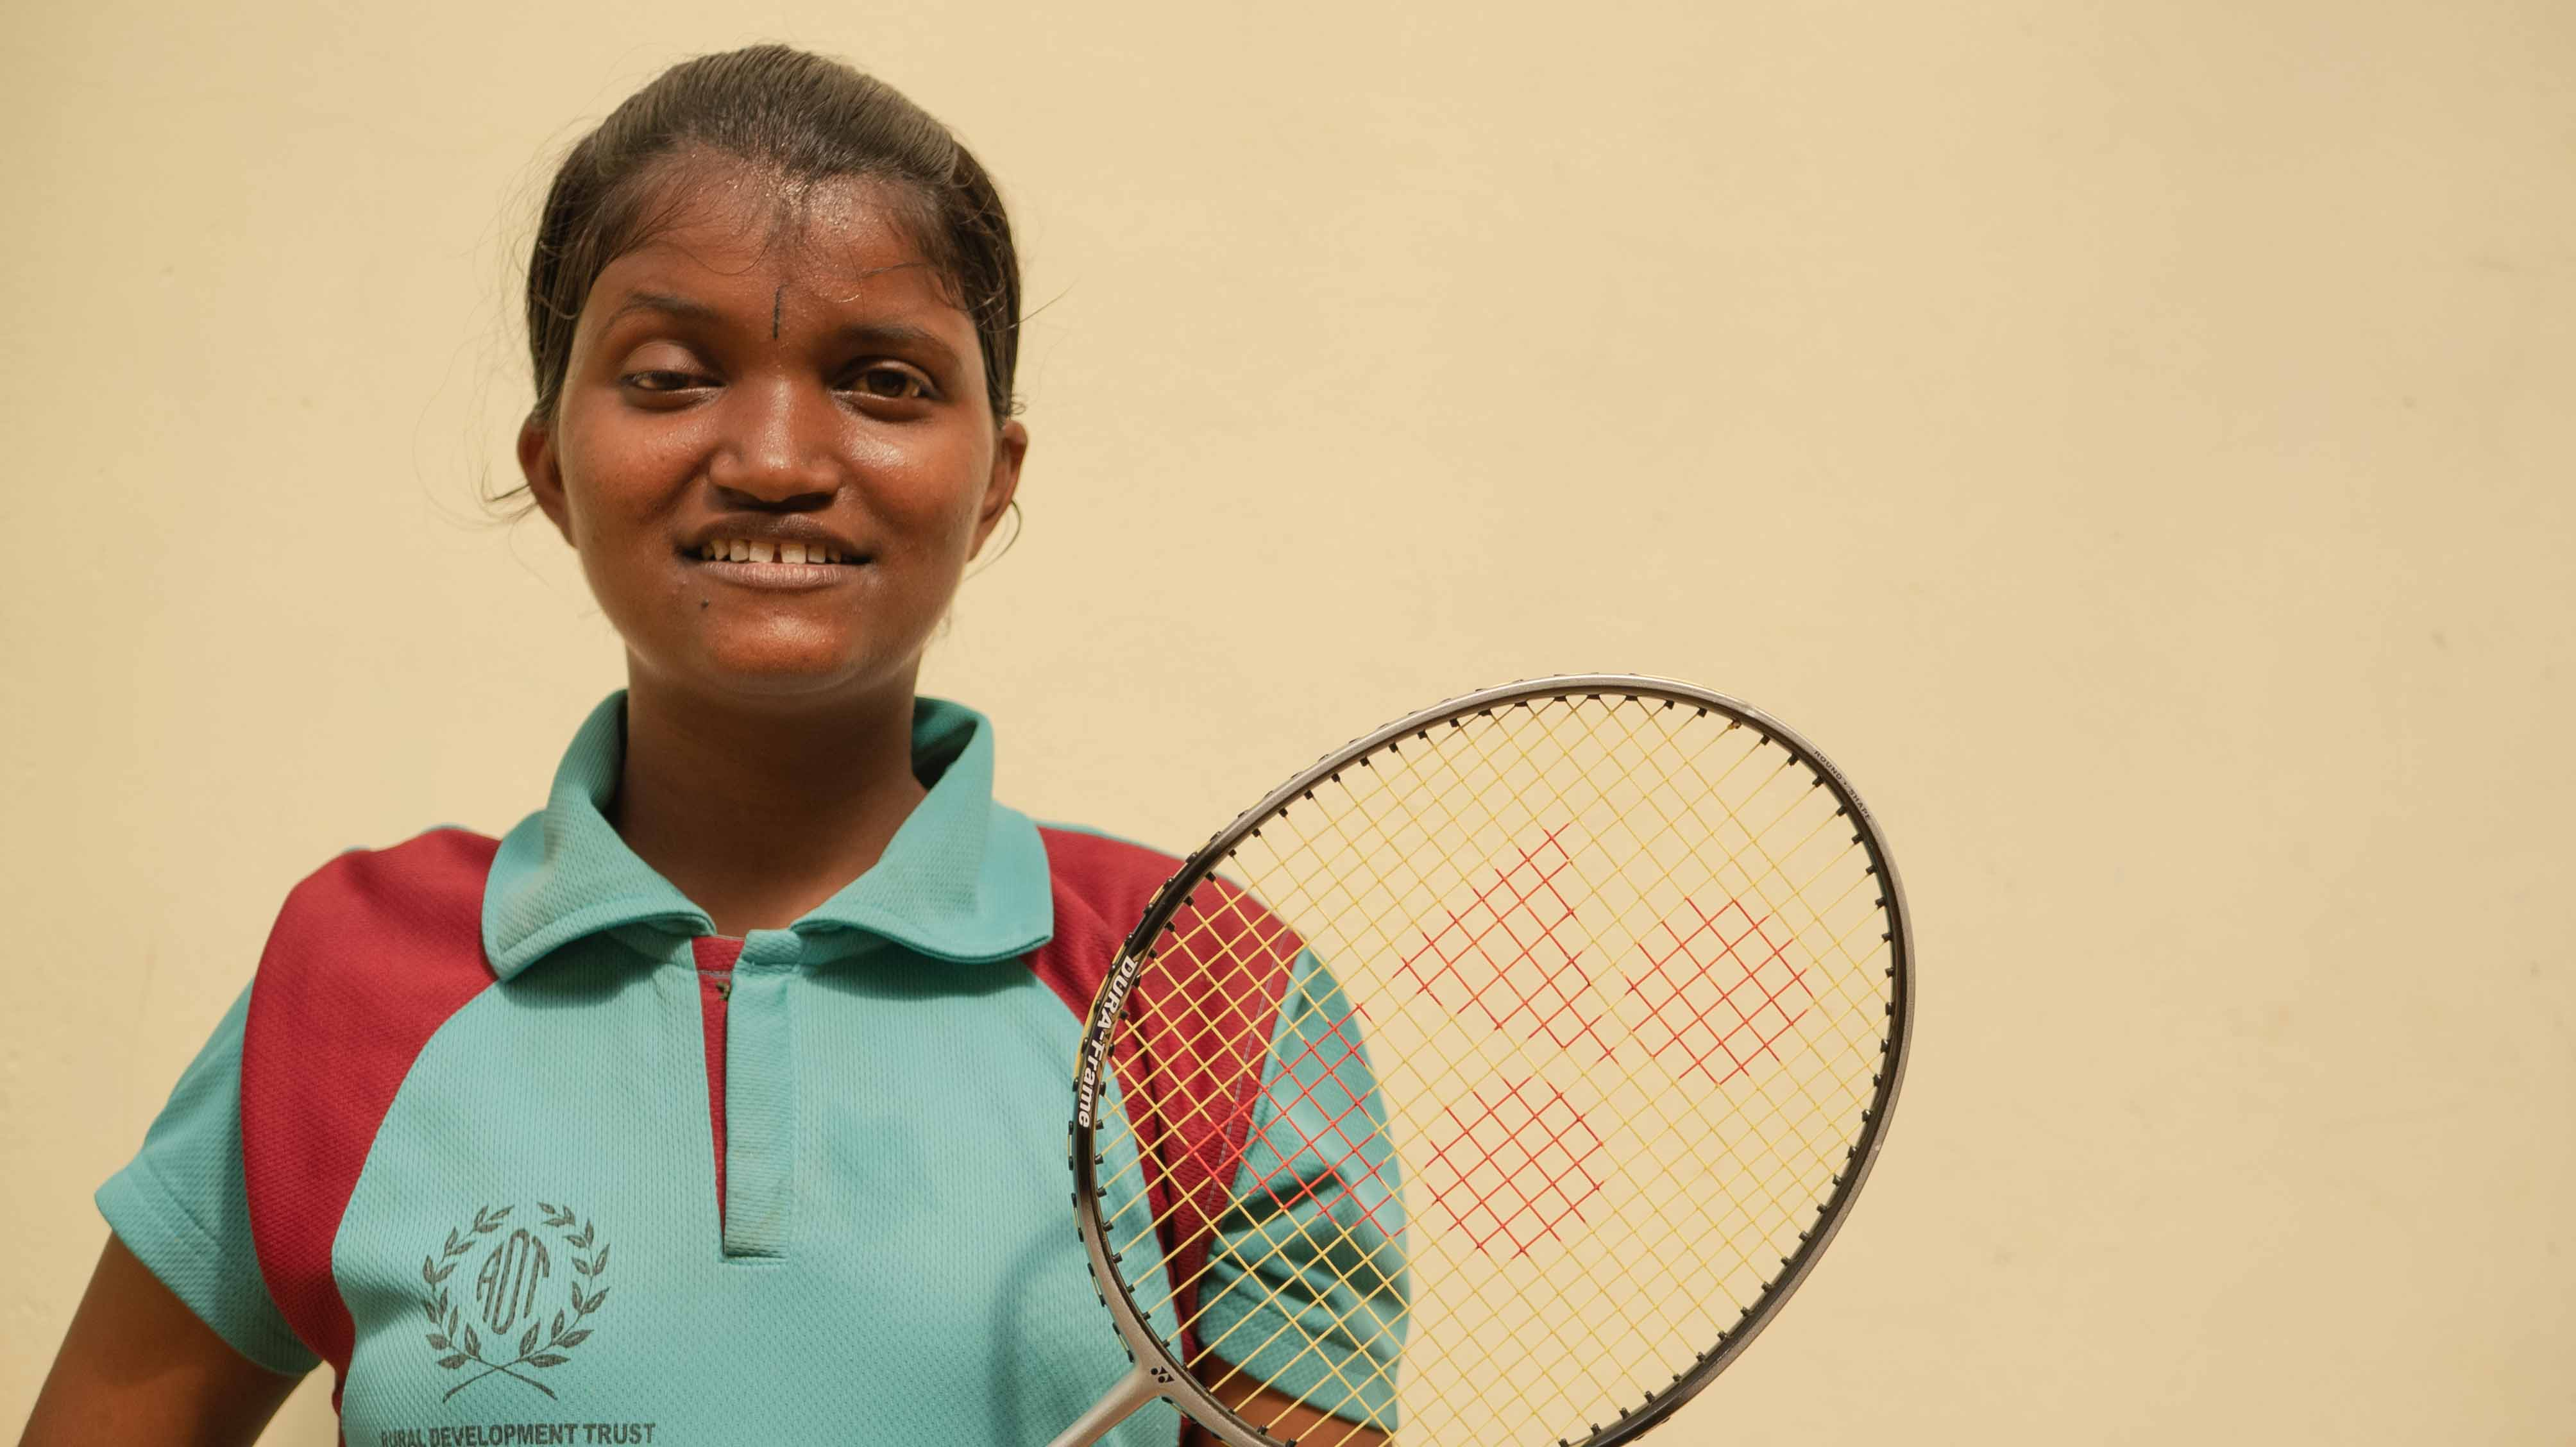 Anantapur's Special Olympics Program Empowering Differently